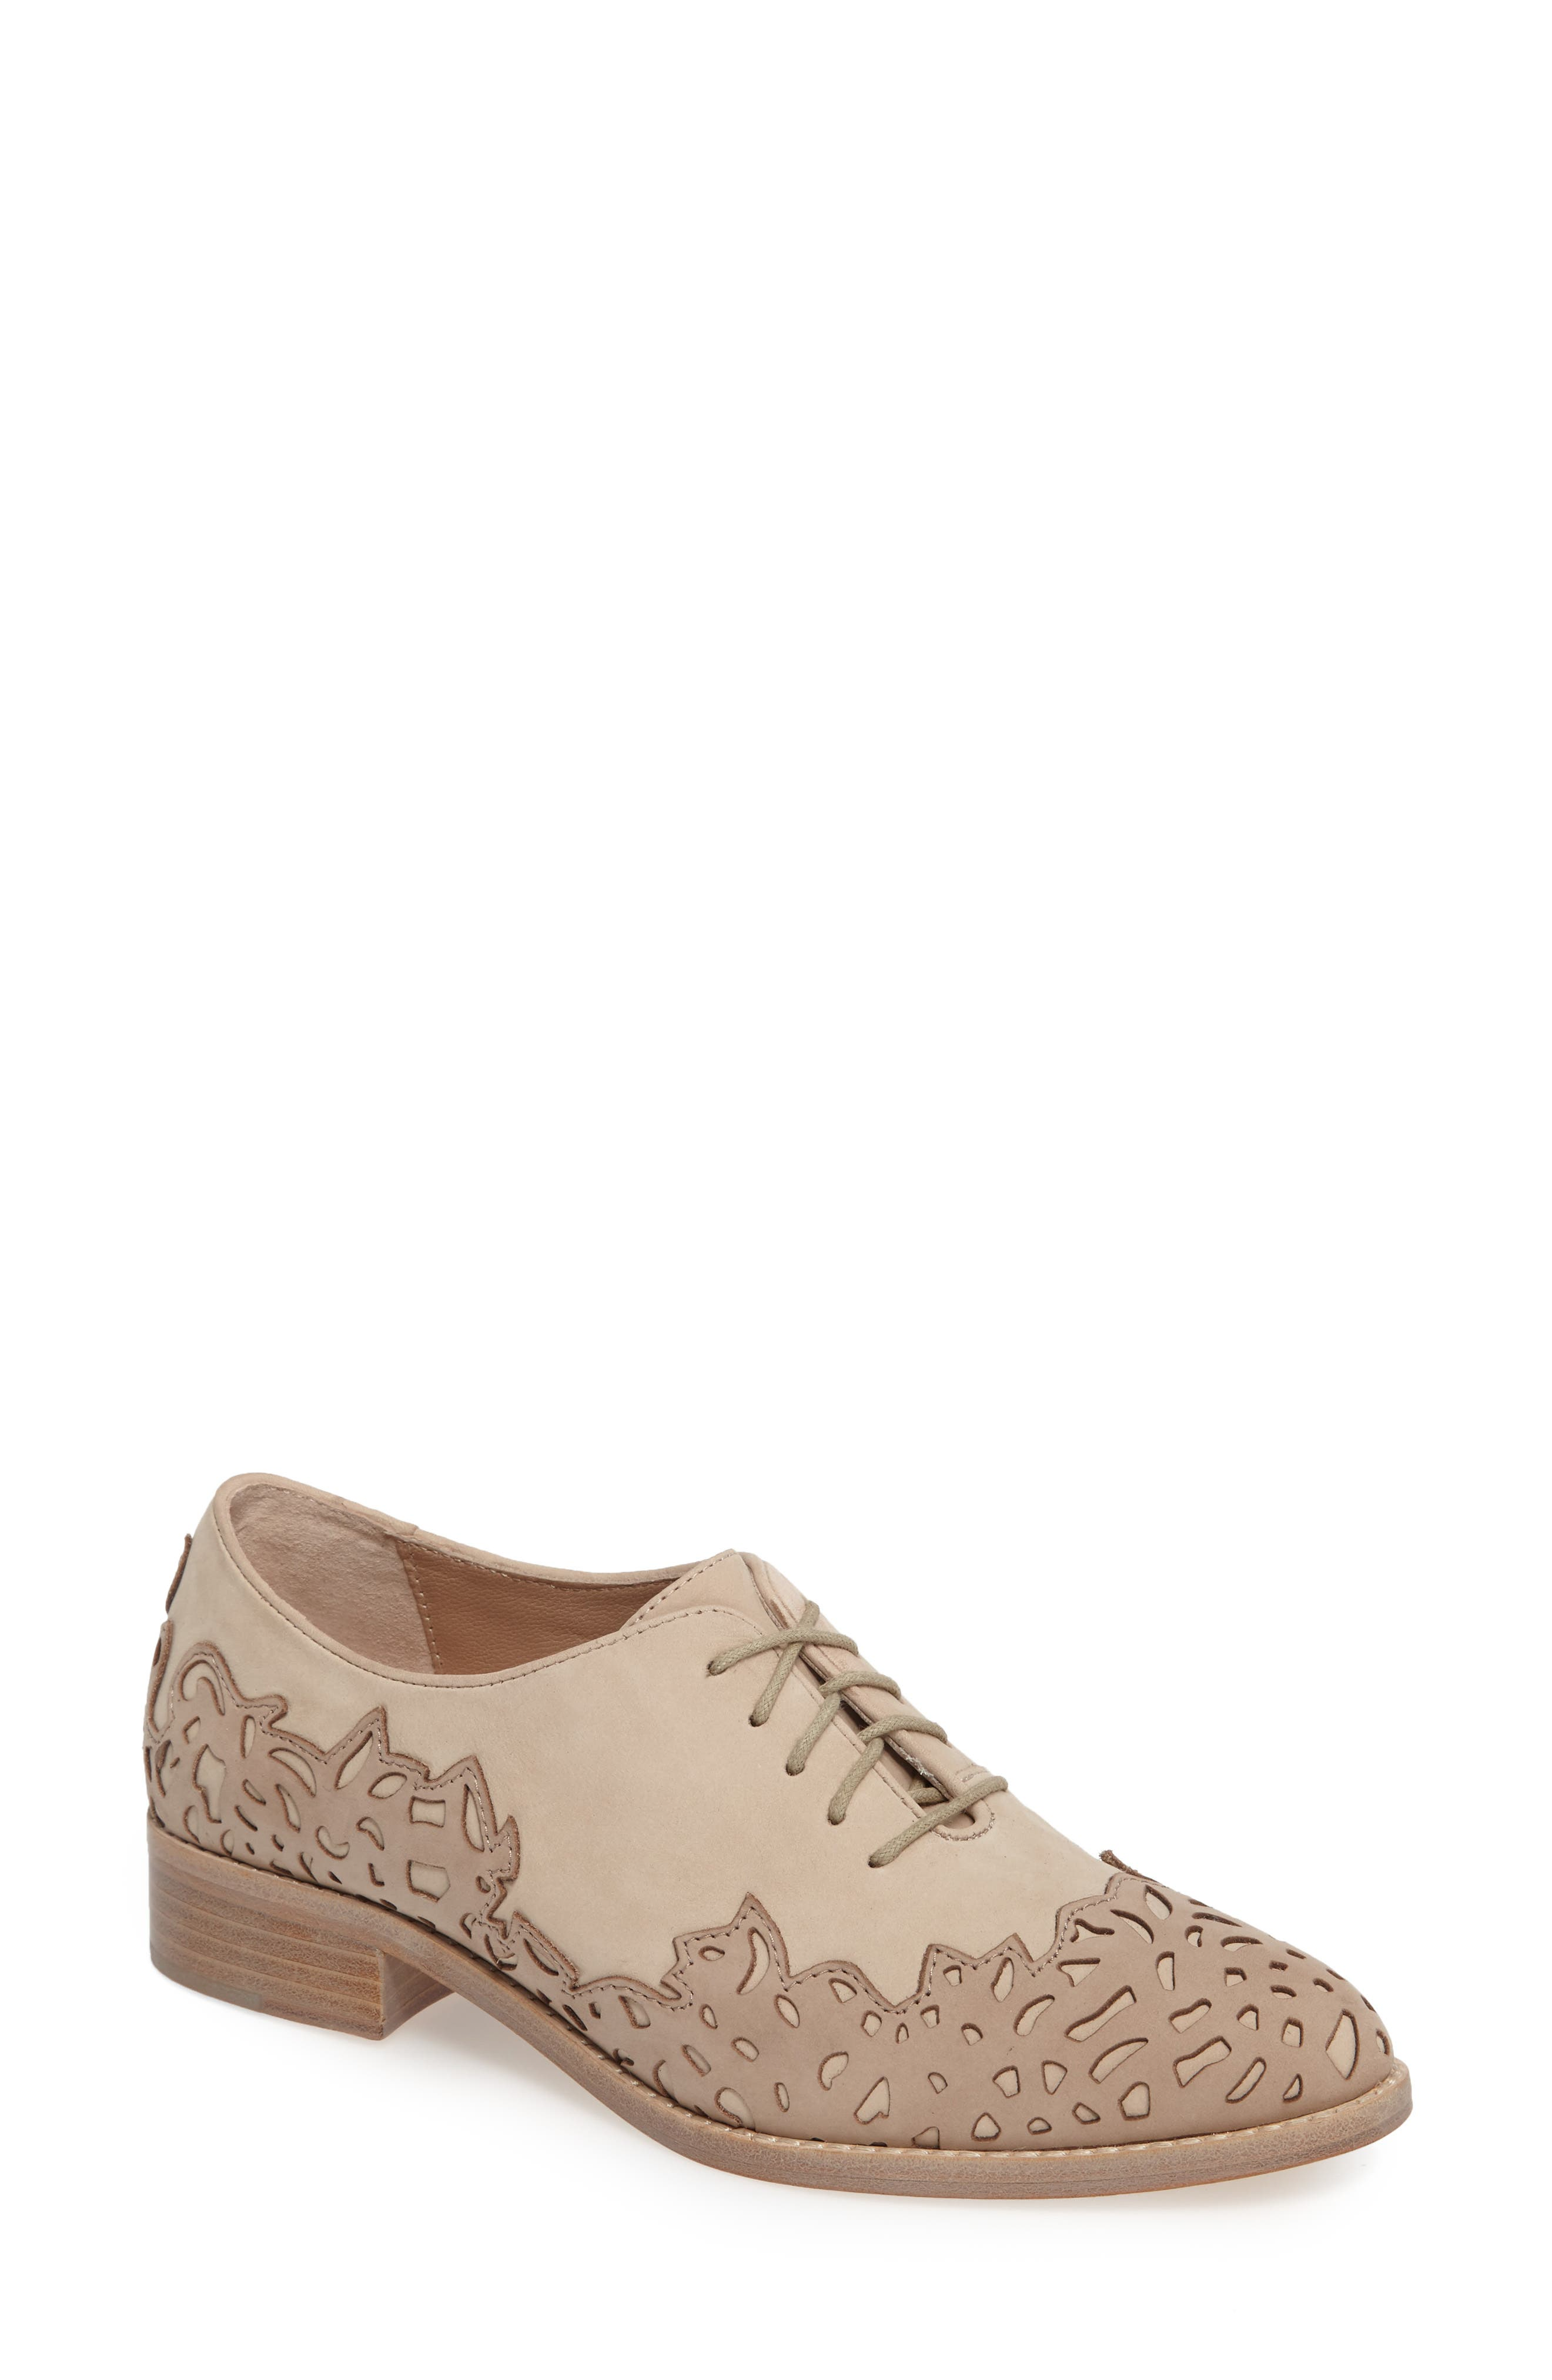 Fedra Oxford,                         Main,                         color, Jasmine Sandstone